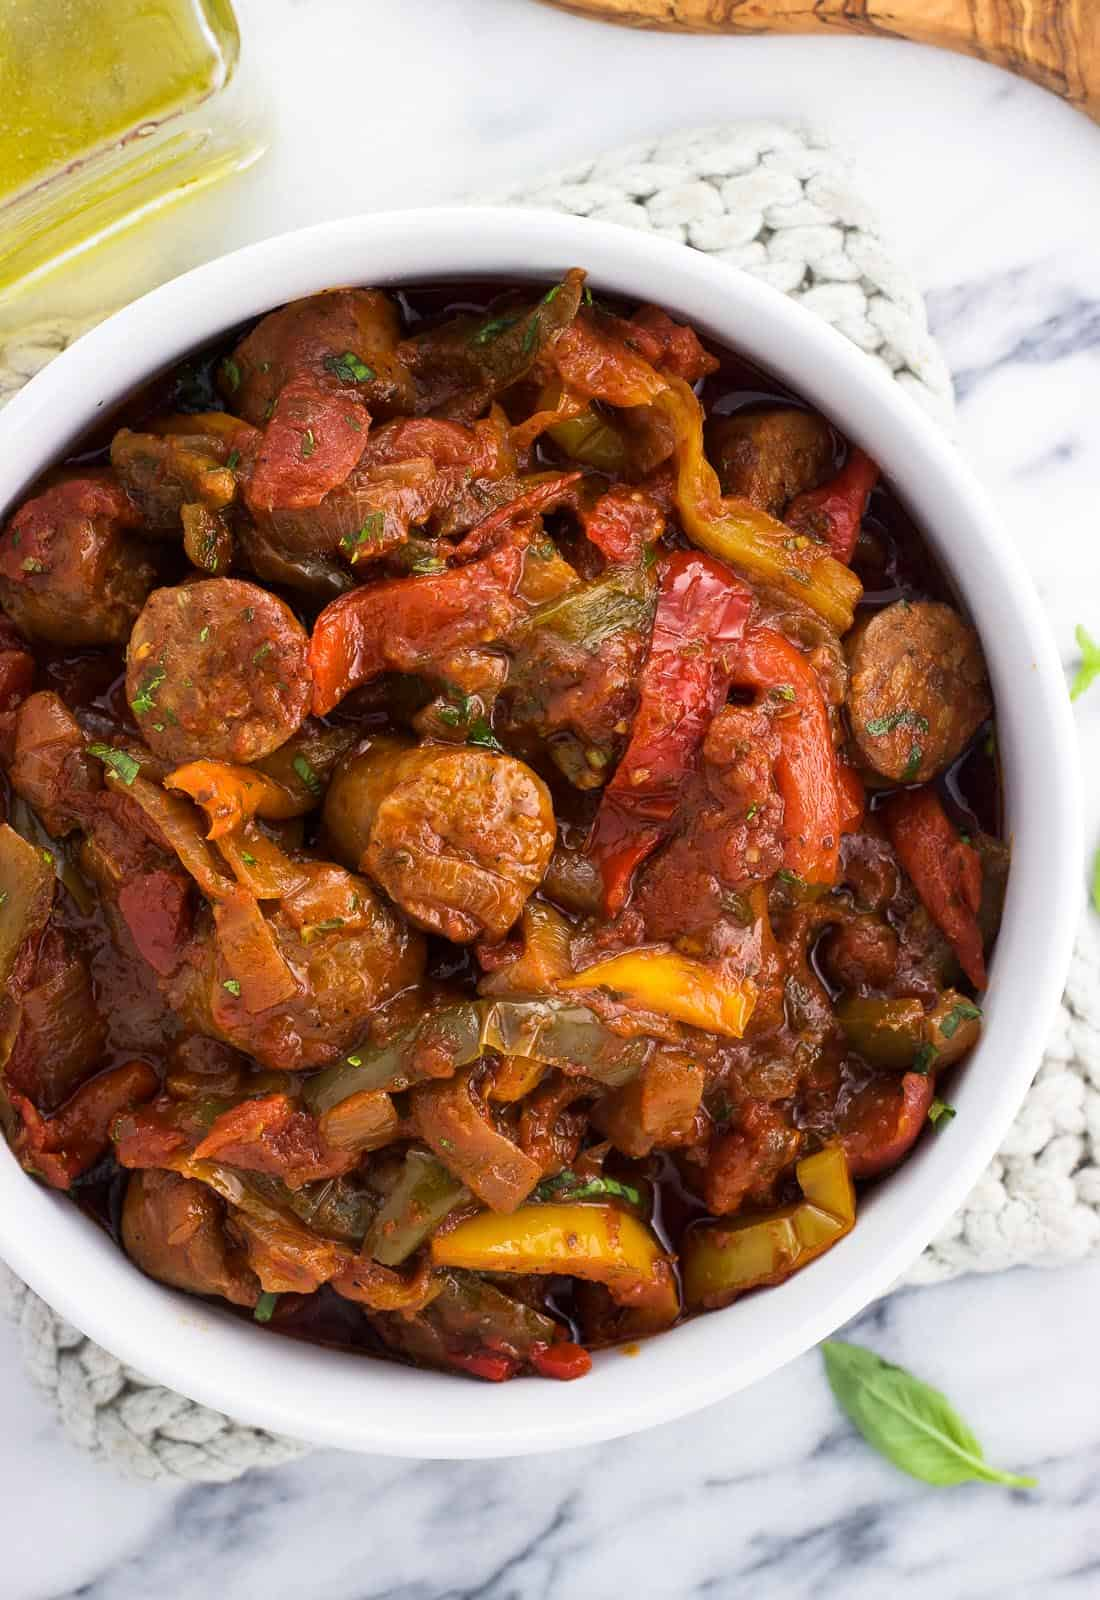 Sausage and peppers in a big serving bowl